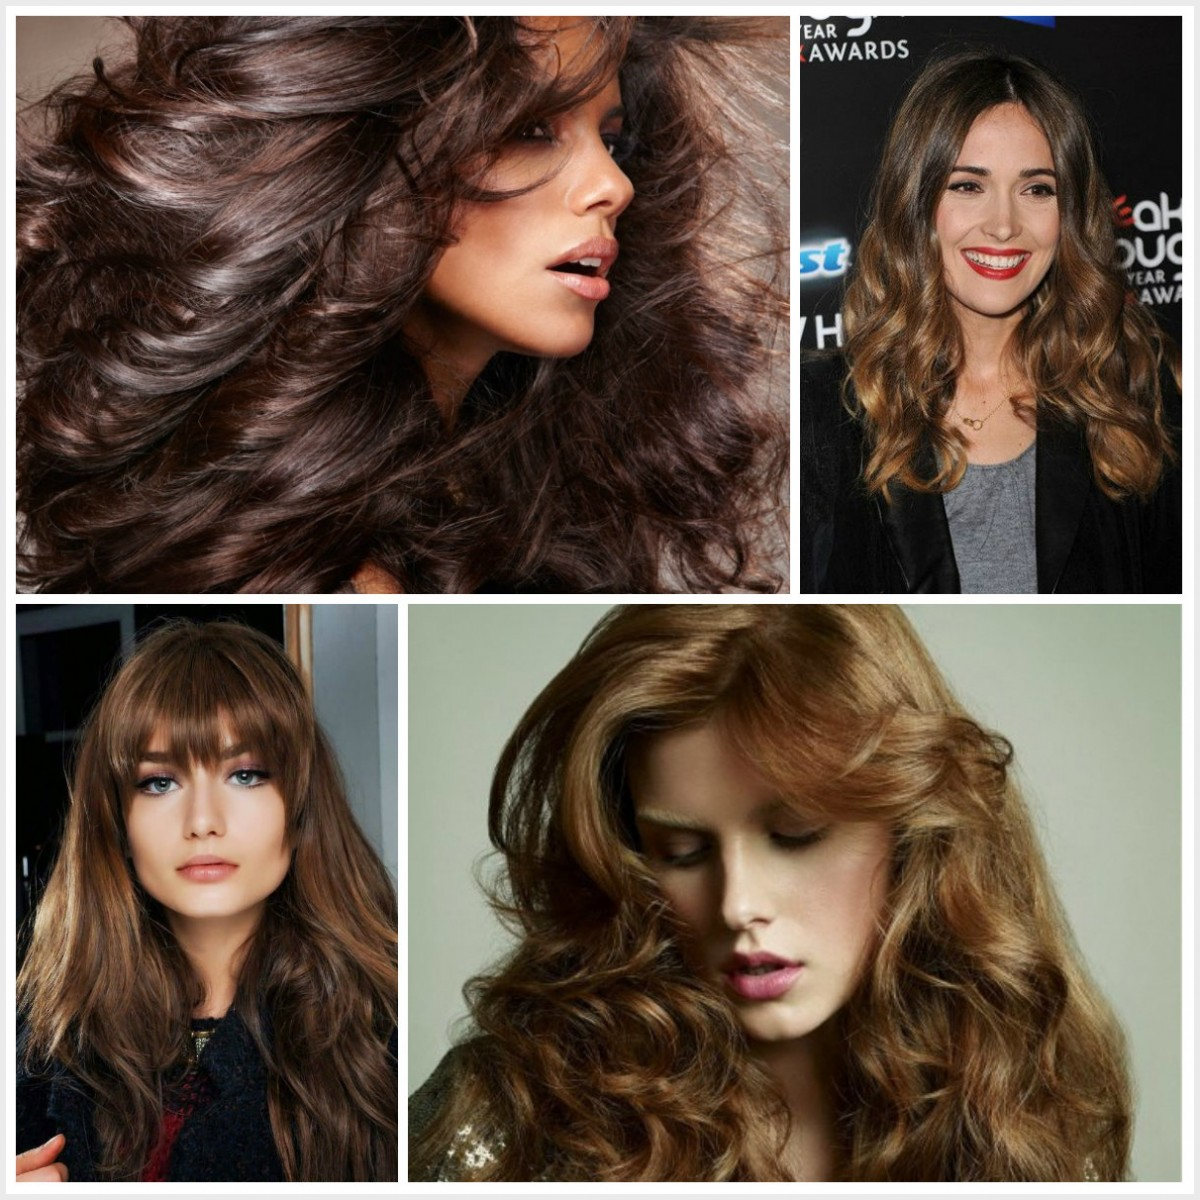 best hair color ideas New Year Best Hair Color Ideas 2019 best hair color ideas for brunettes best hair color trends 2019